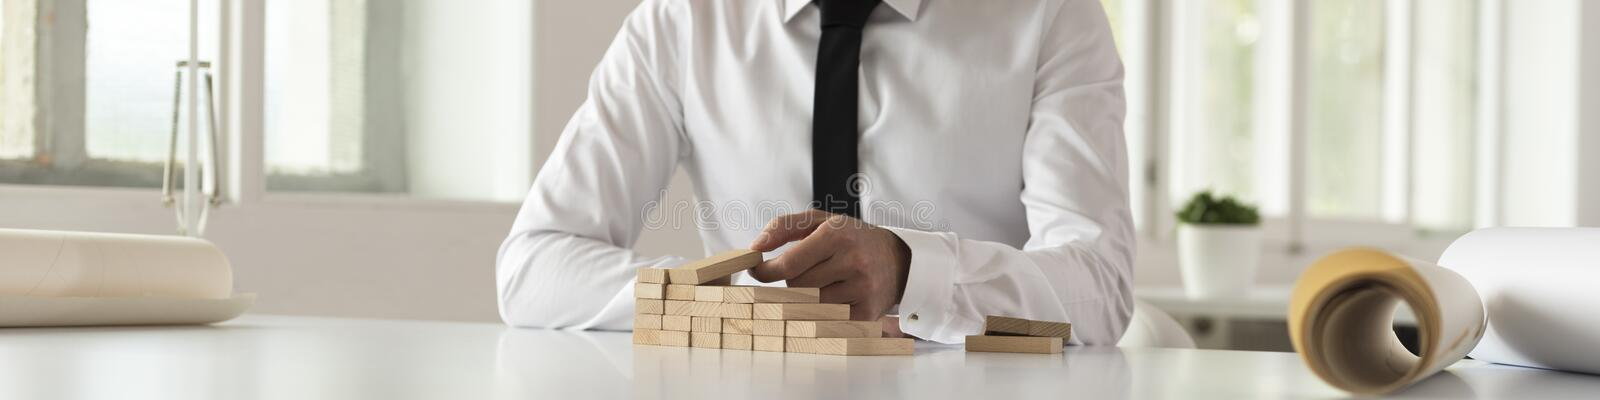 Businessman building steps of wooden blocks stock photos